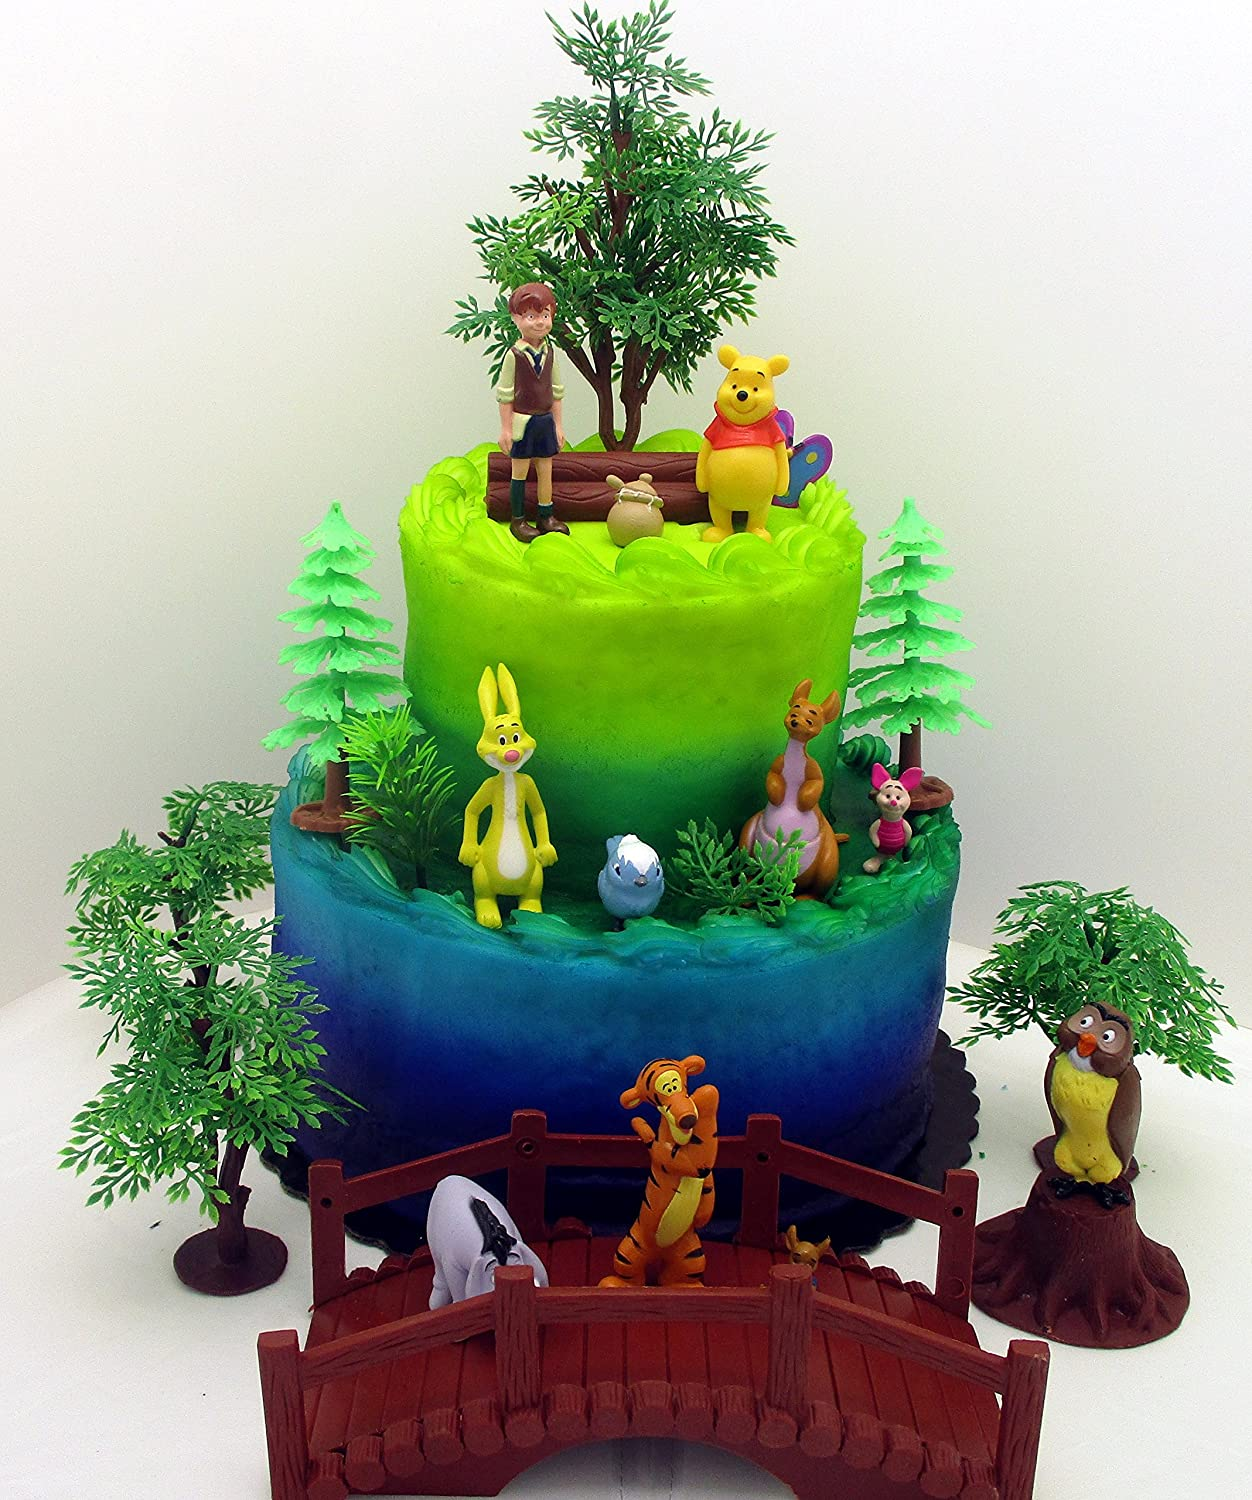 Winnie The Pooh 16 Piece Birthday Cake Topper Set Featuring 2 Figures Of Eeyore Kanga Roo Owl Tigger Piglet Rabbit